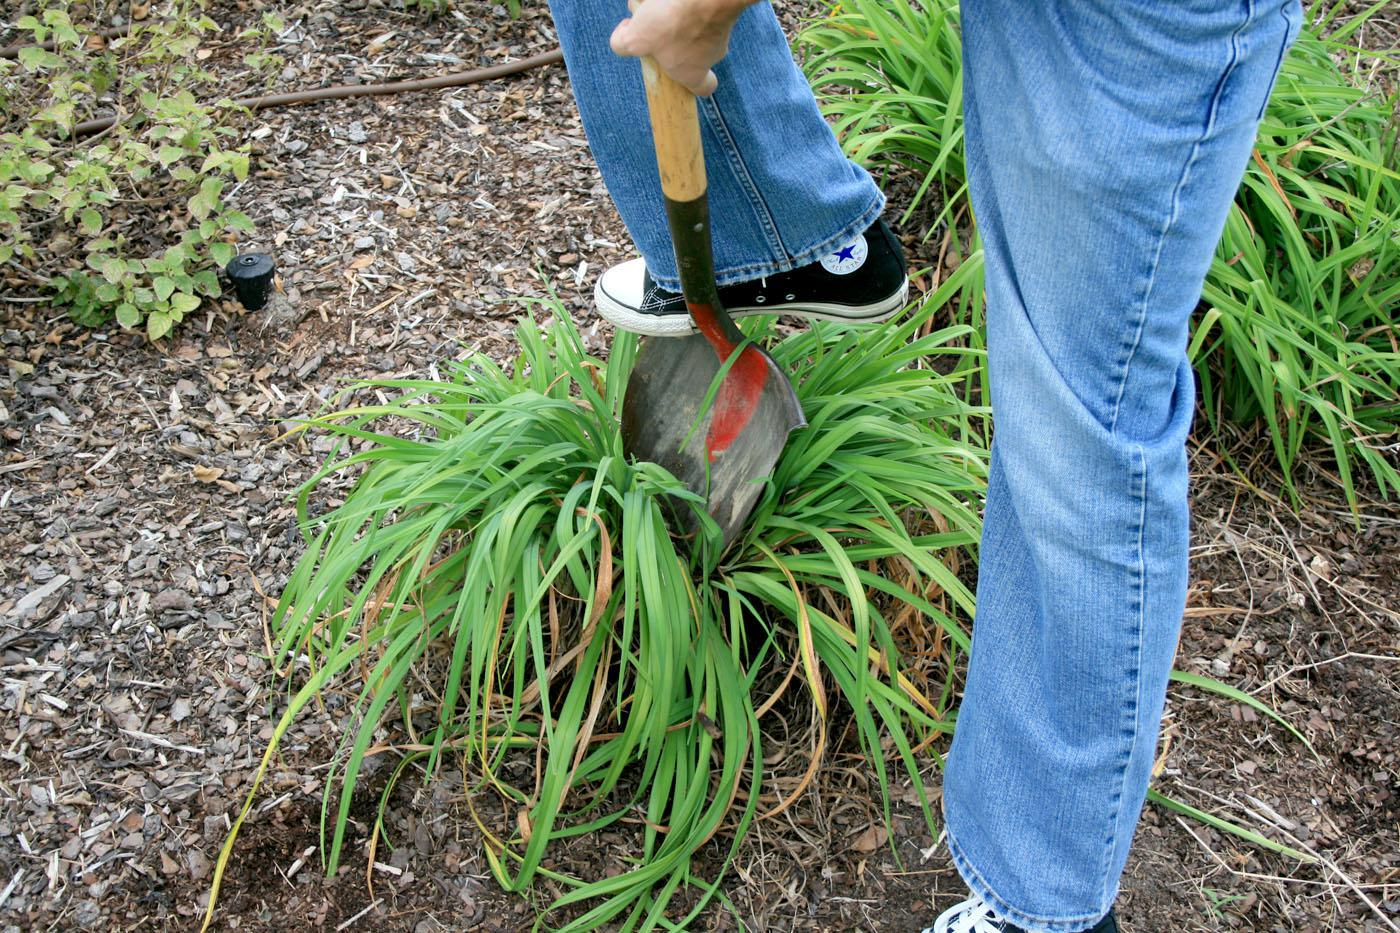 A sharp shovel can be used to divide some perennials, such as this daylily clump being split in half. (Photo by Gary Bachman)